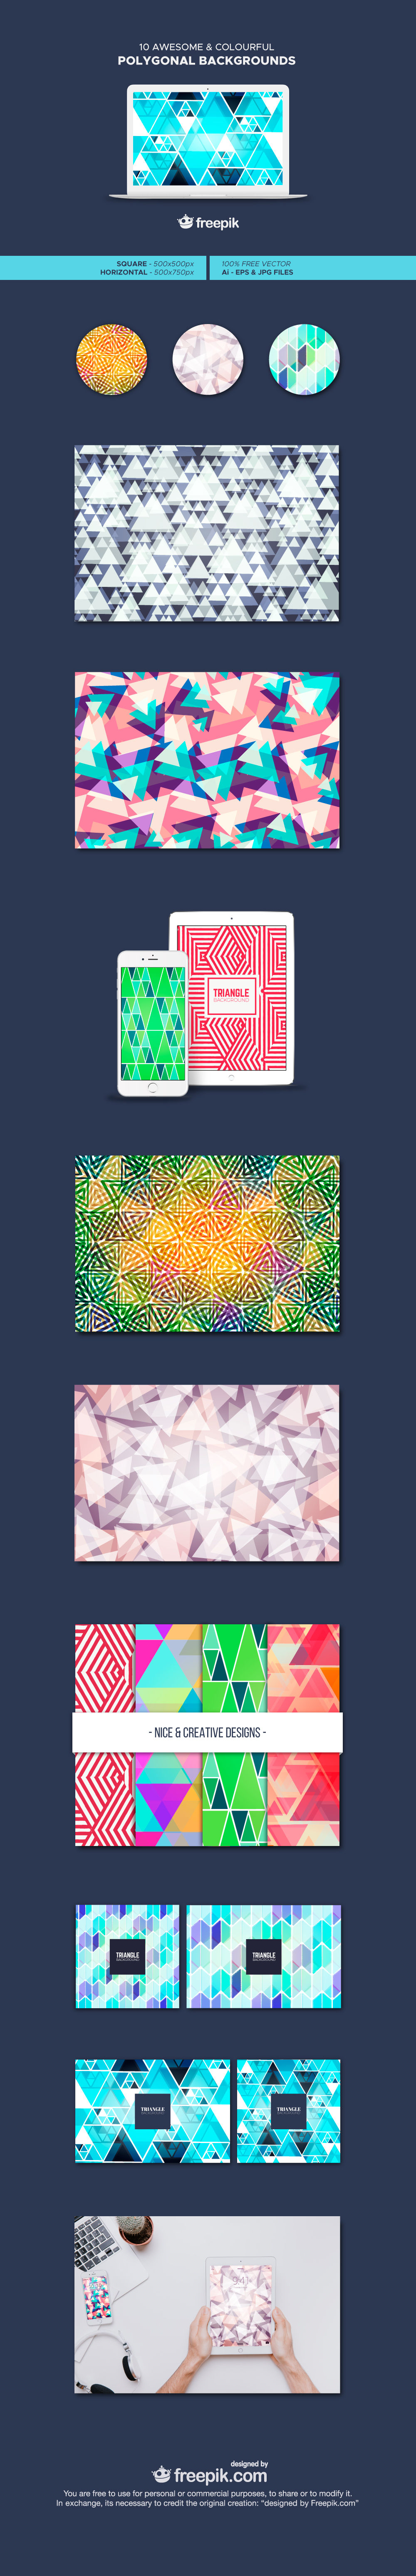 Freebie: 10 Awesome and Colorful Polygonal Backgrounds